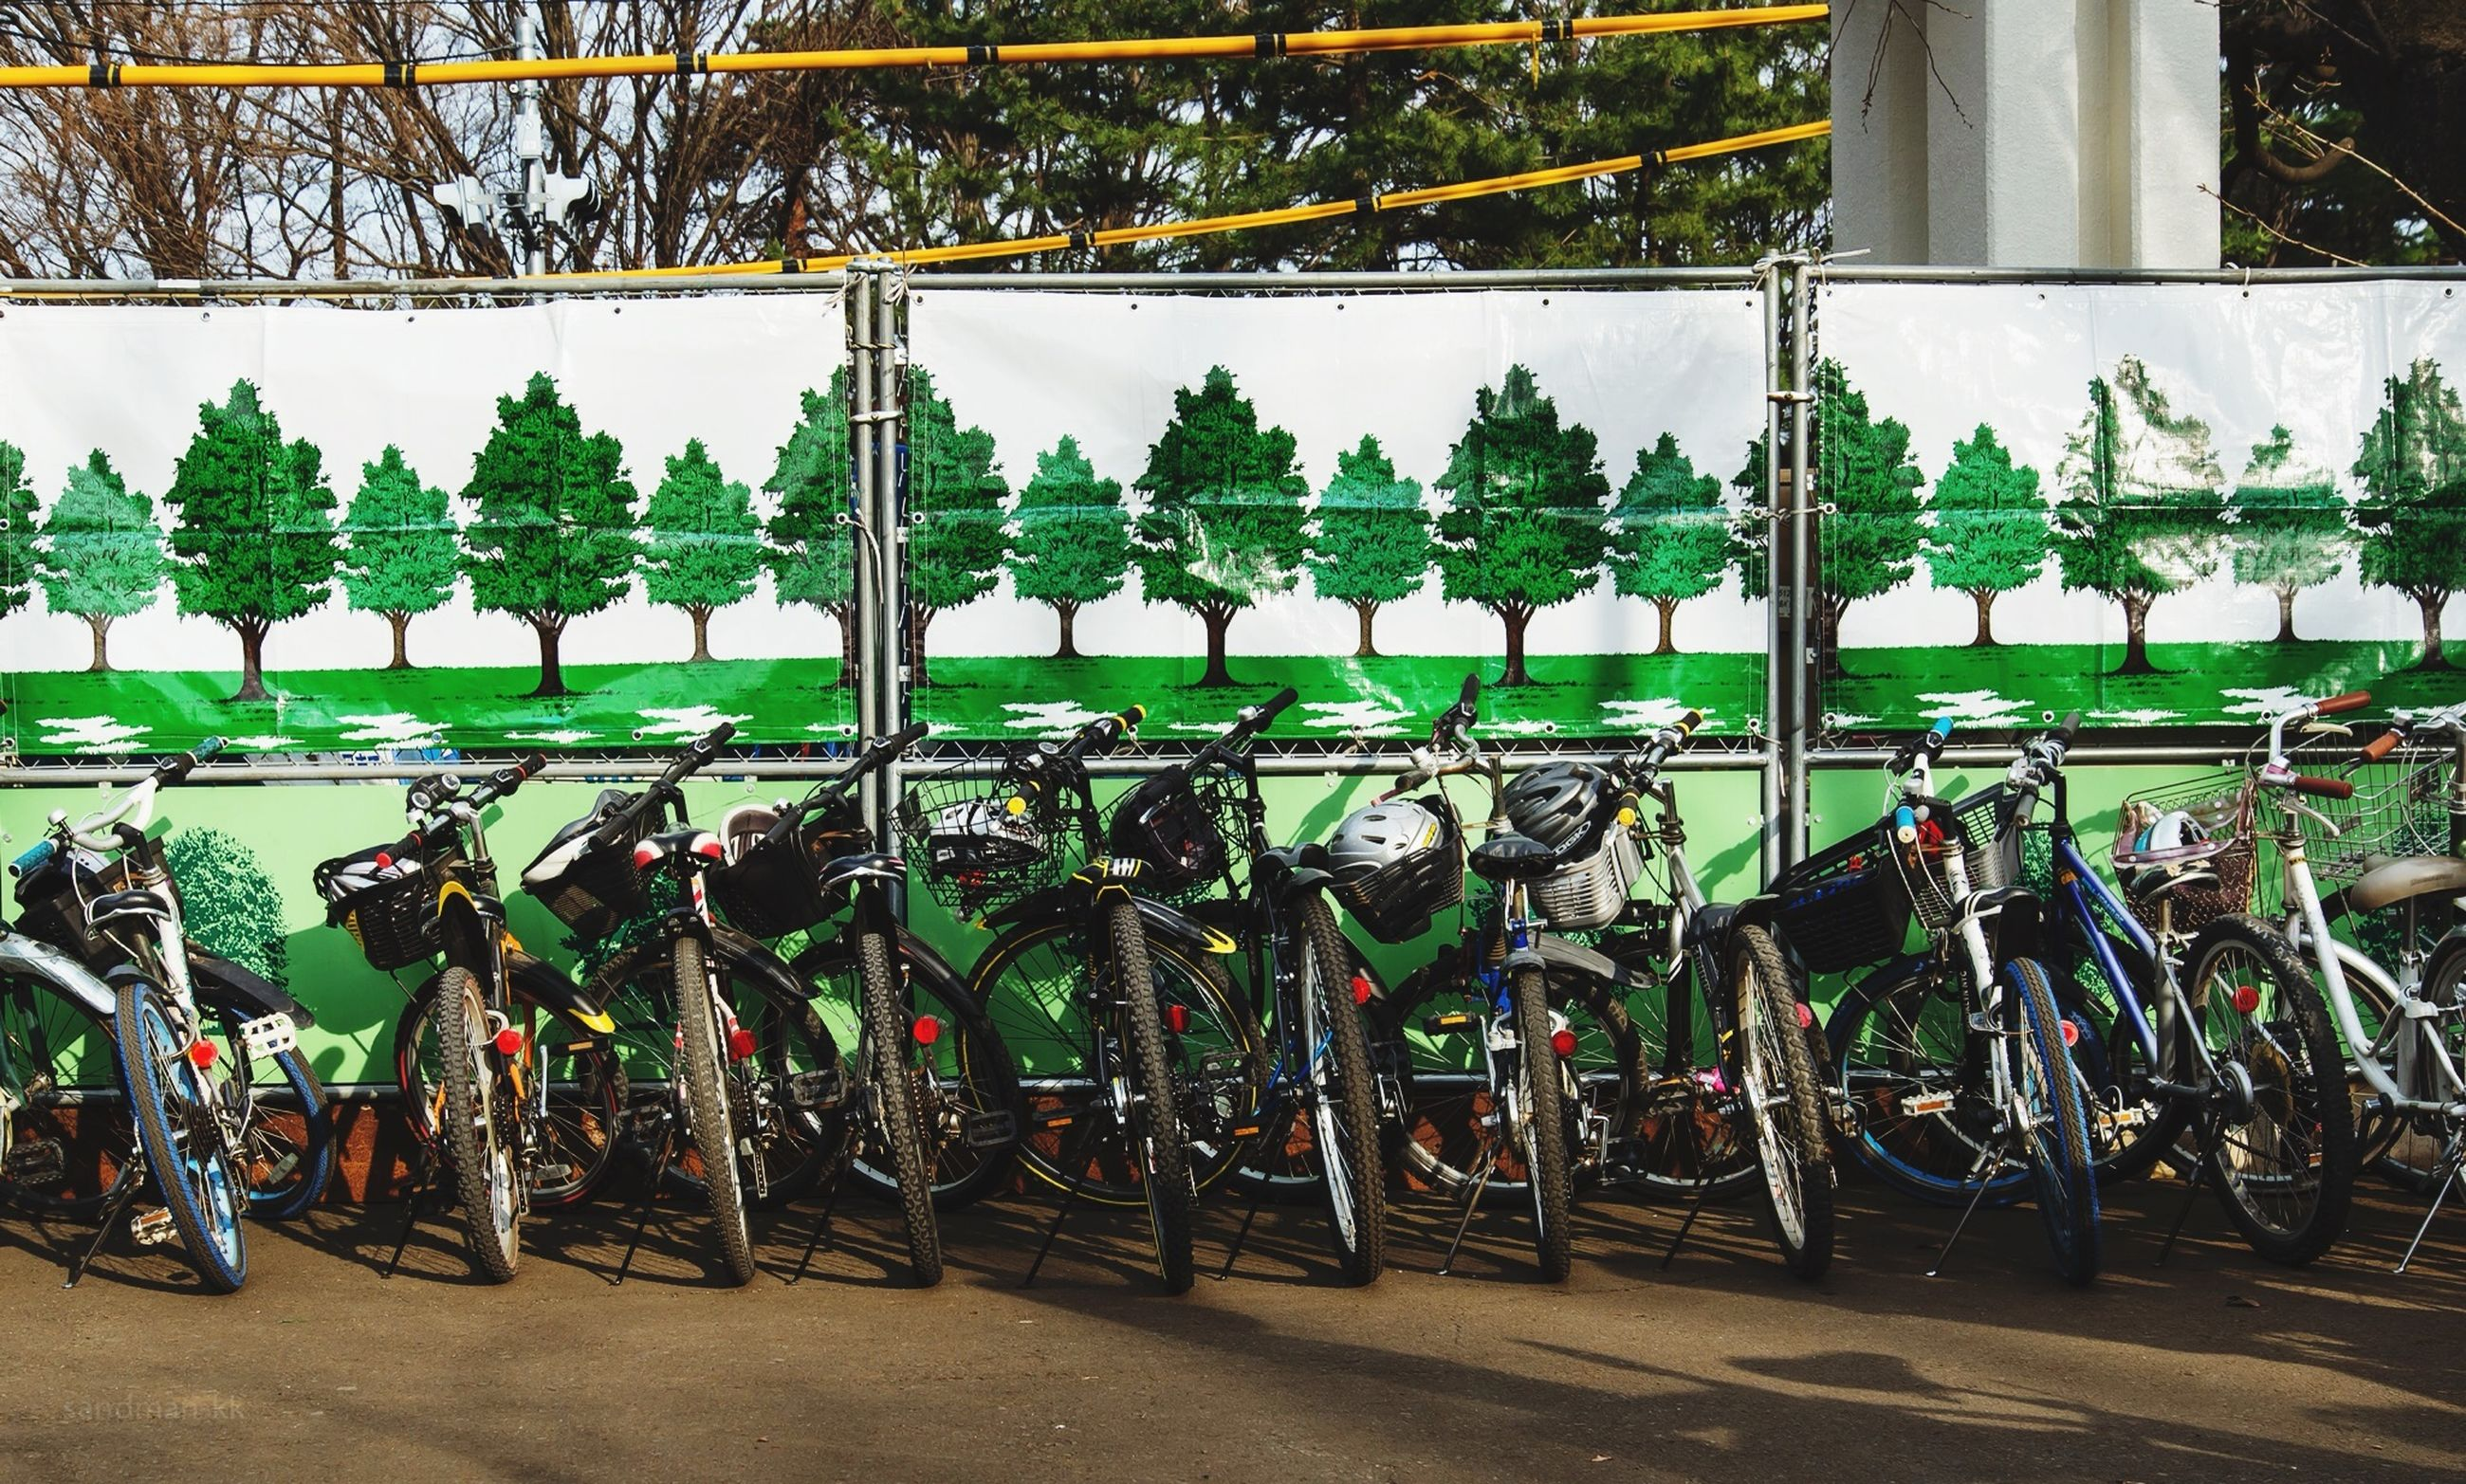 transportation, land vehicle, street, road, mode of transport, high angle view, day, bicycle, city, outdoors, large group of people, men, plant, growth, city life, building exterior, incidental people, car, tree